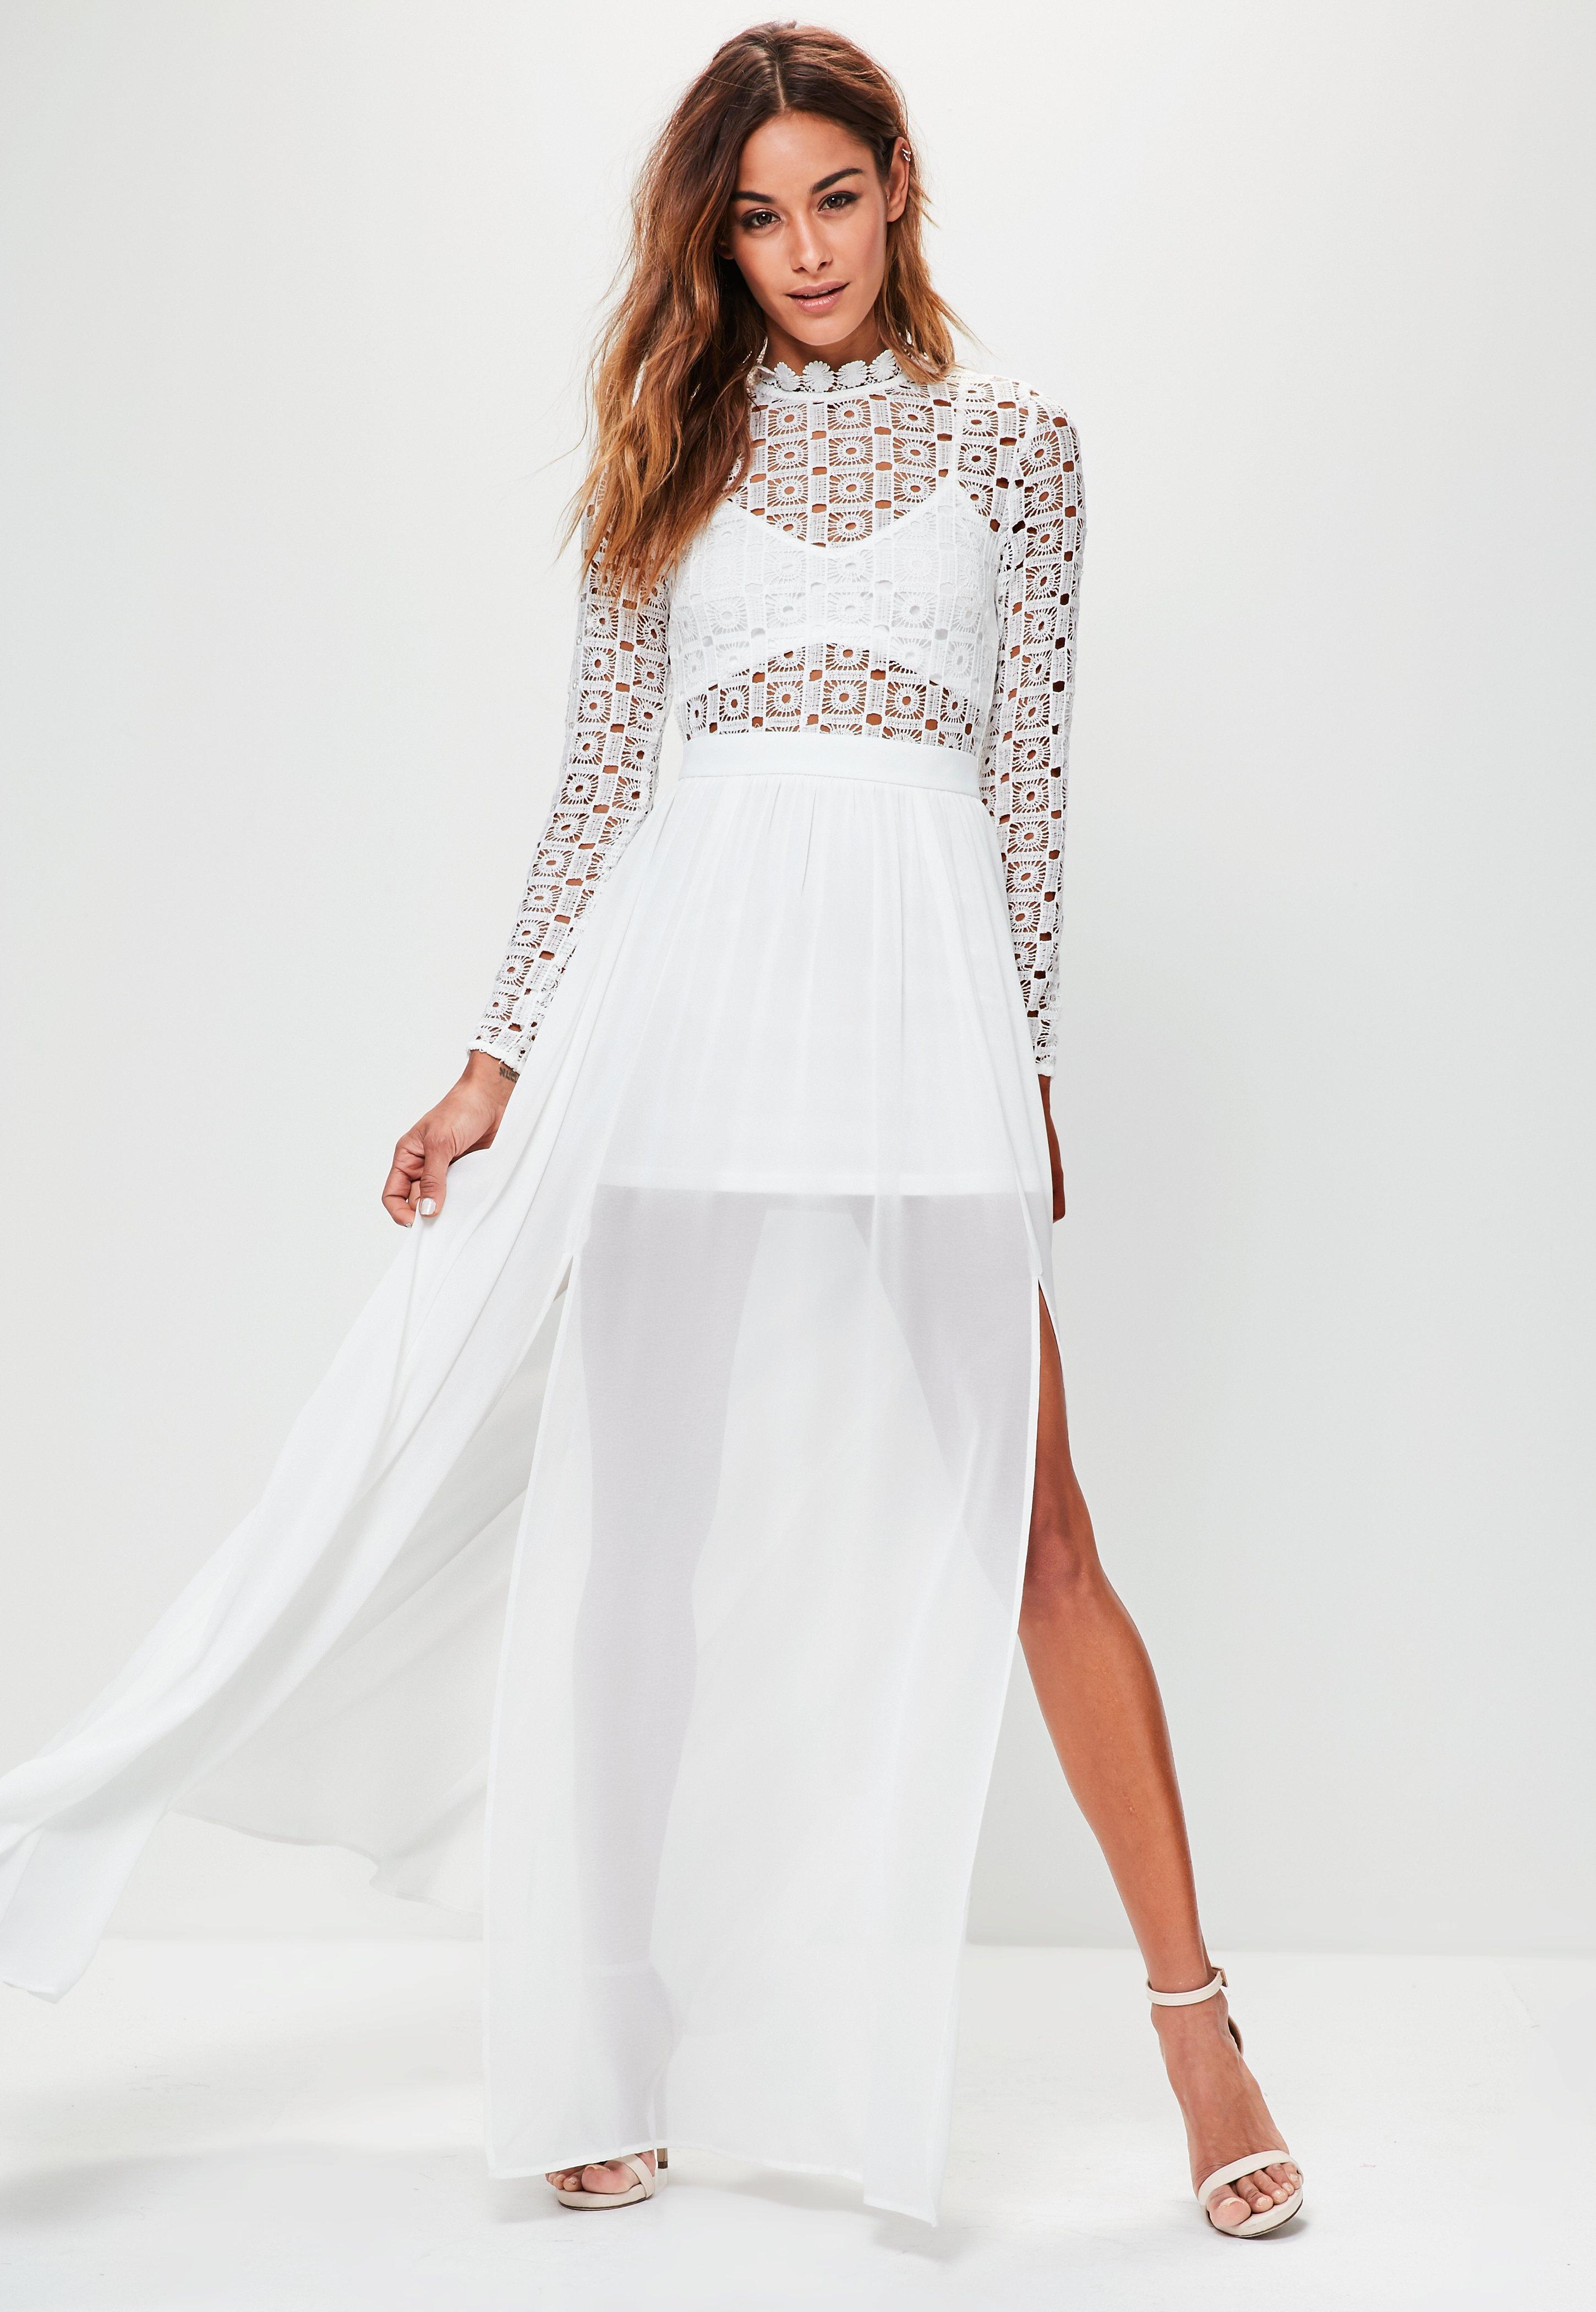 86aa5ce1dbe4 Lyst - Missguided White Crochet High Neck Long Sleeve Maxi Dress in ...